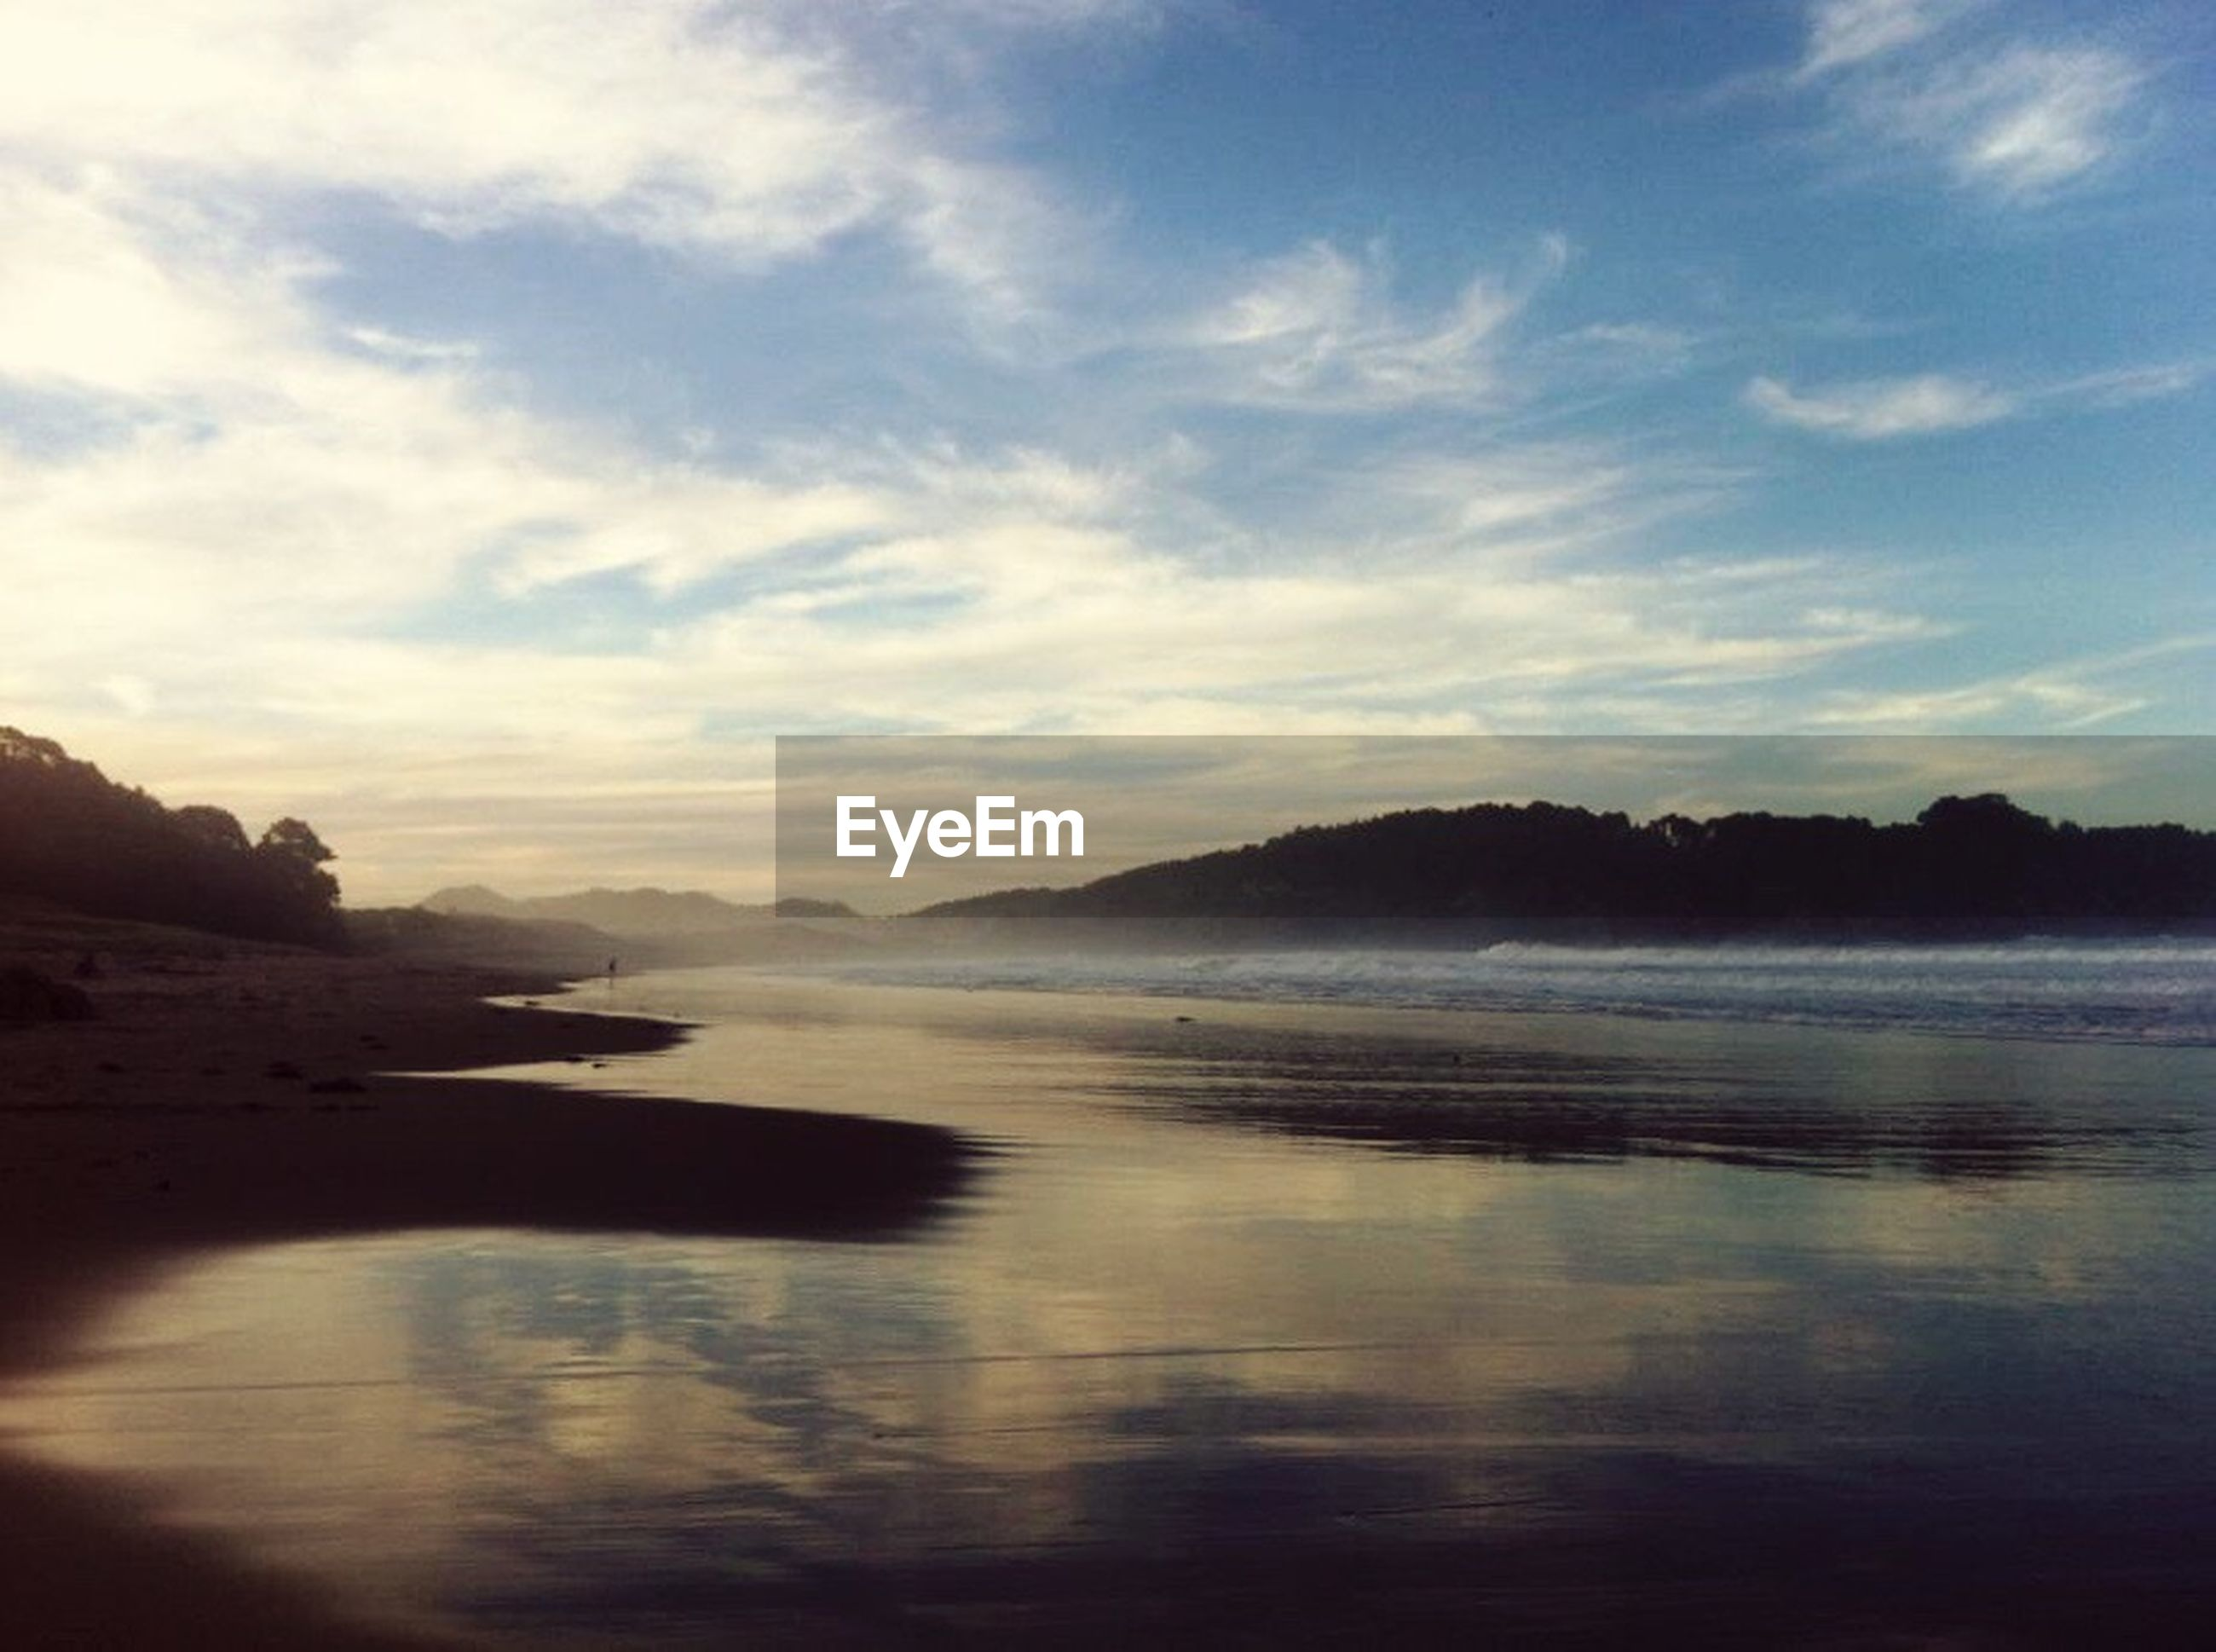 reflection, sea, water, landscape, tranquil scene, idyllic, sky, beach, beauty in nature, no people, scenics, nature, outdoors, mountain, day